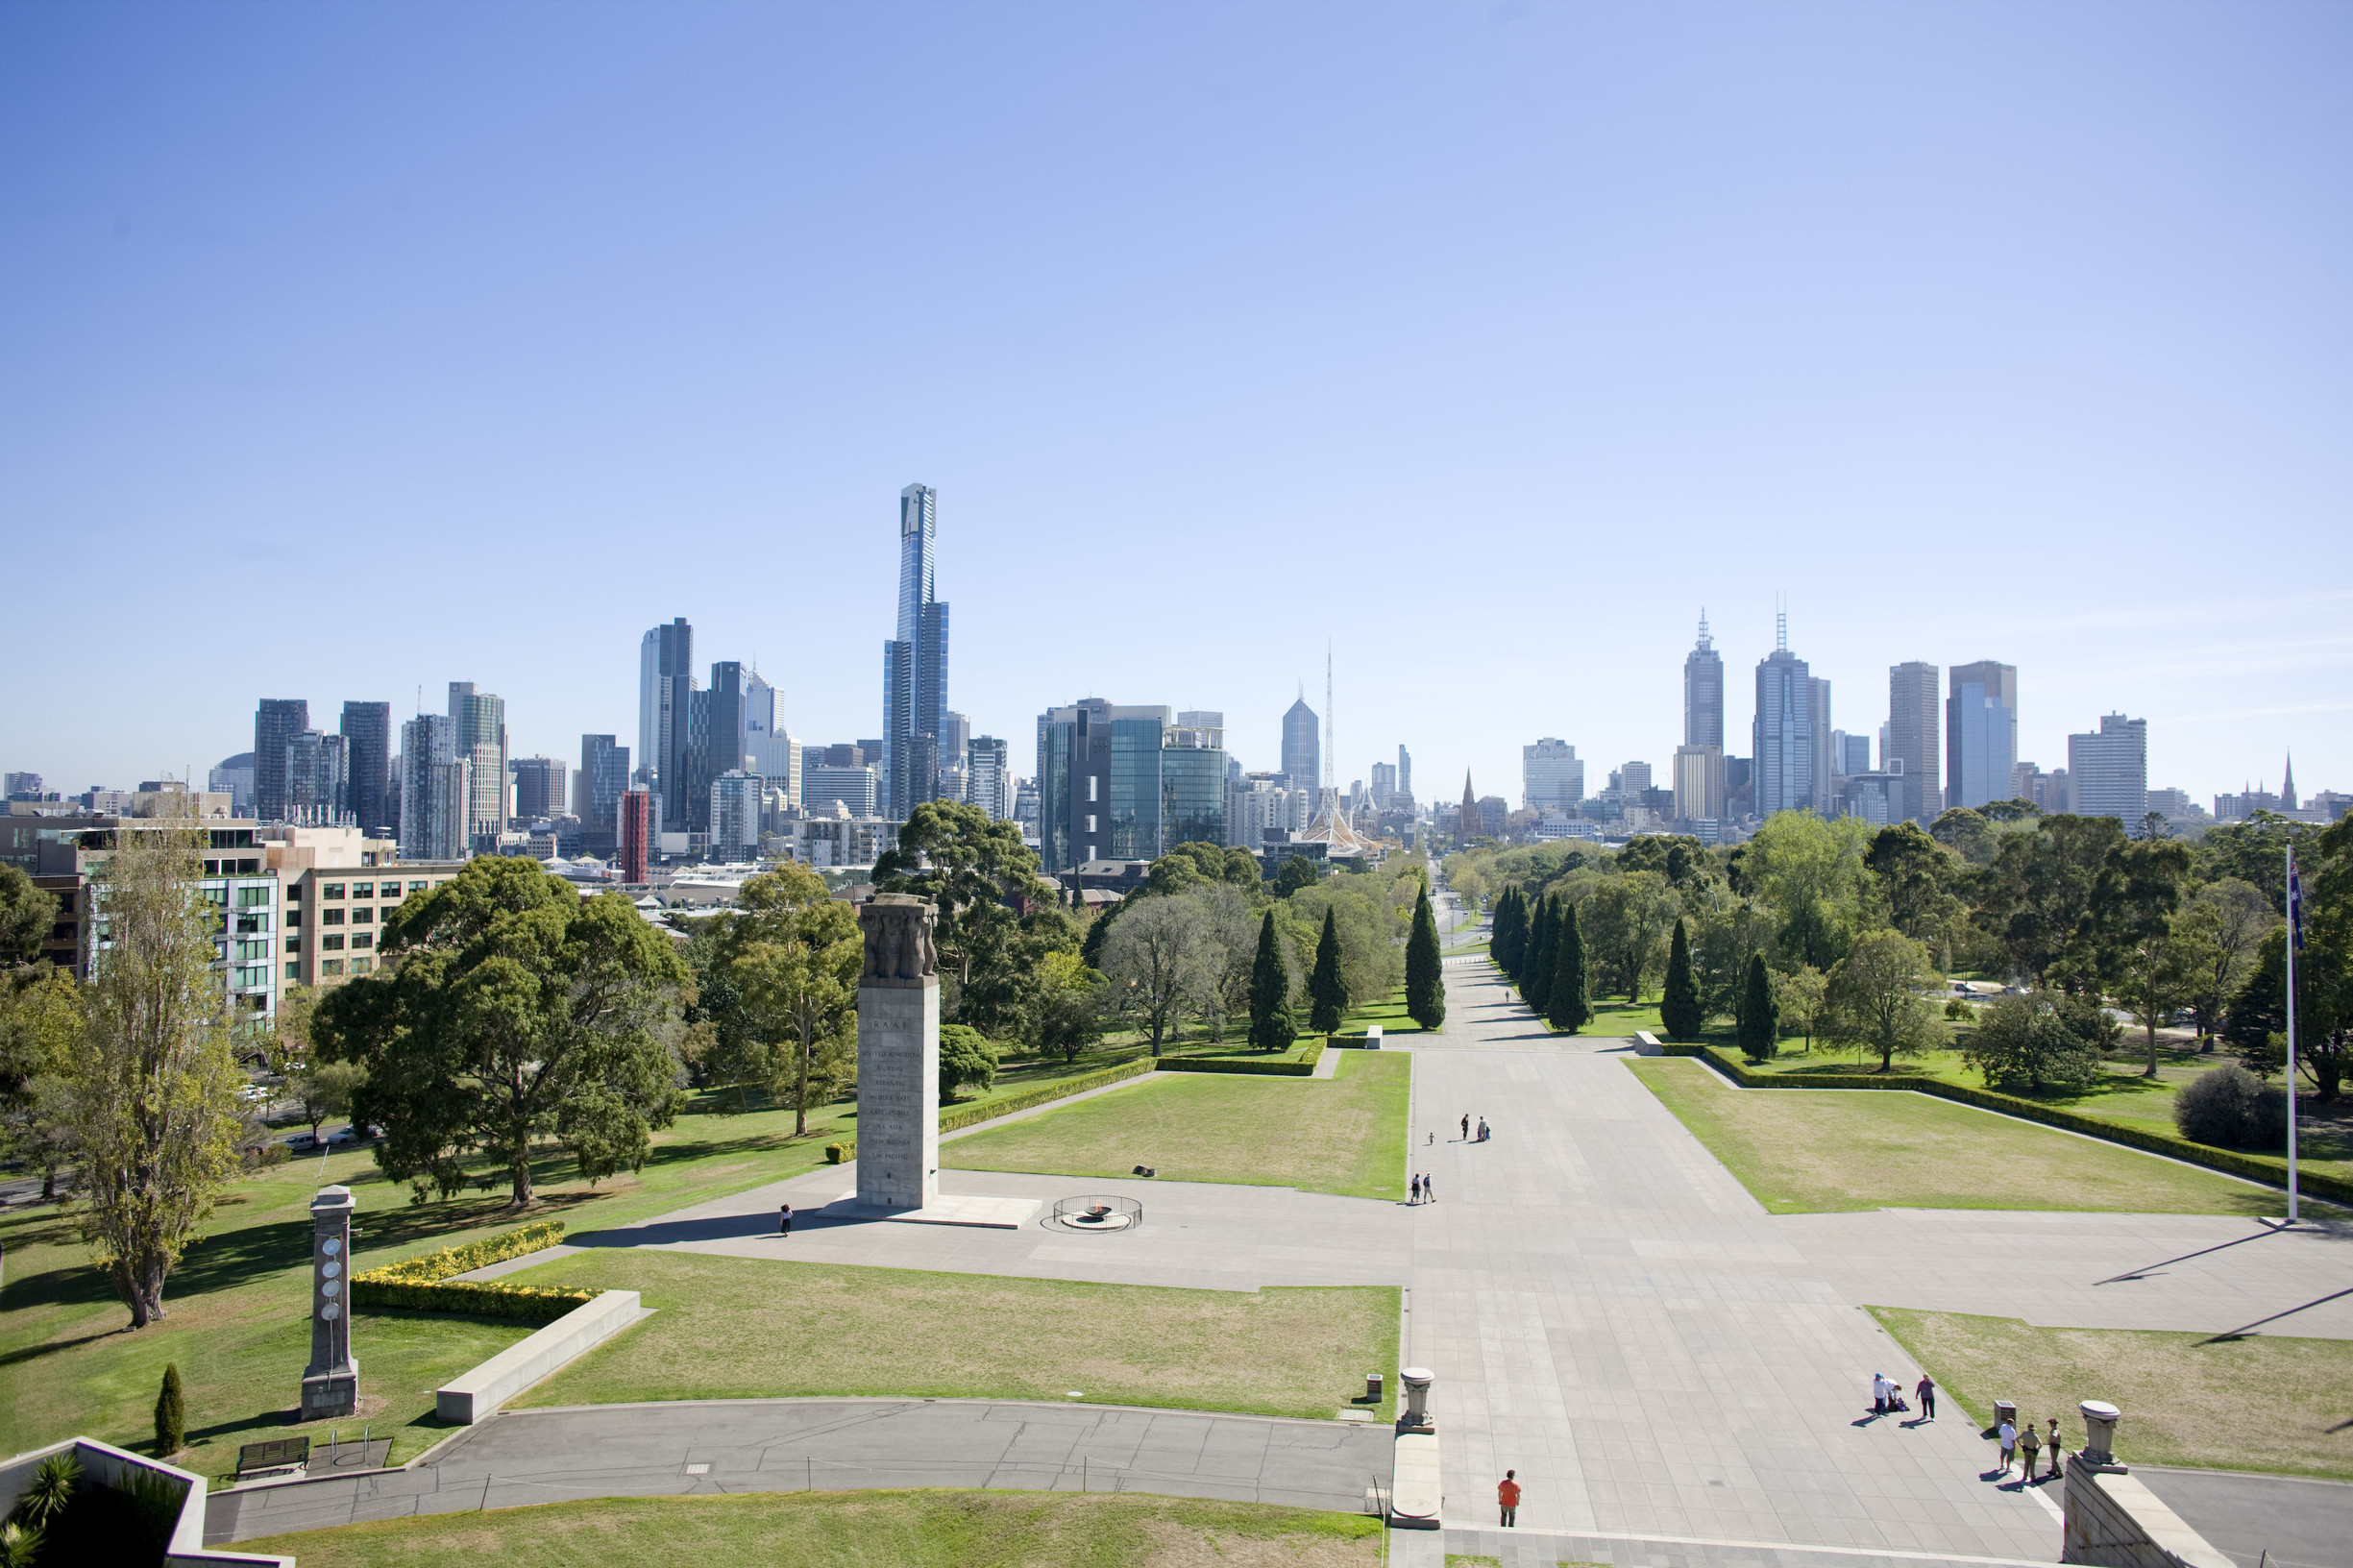 View of Melbourne's skyline from the Shrine of Remembrance